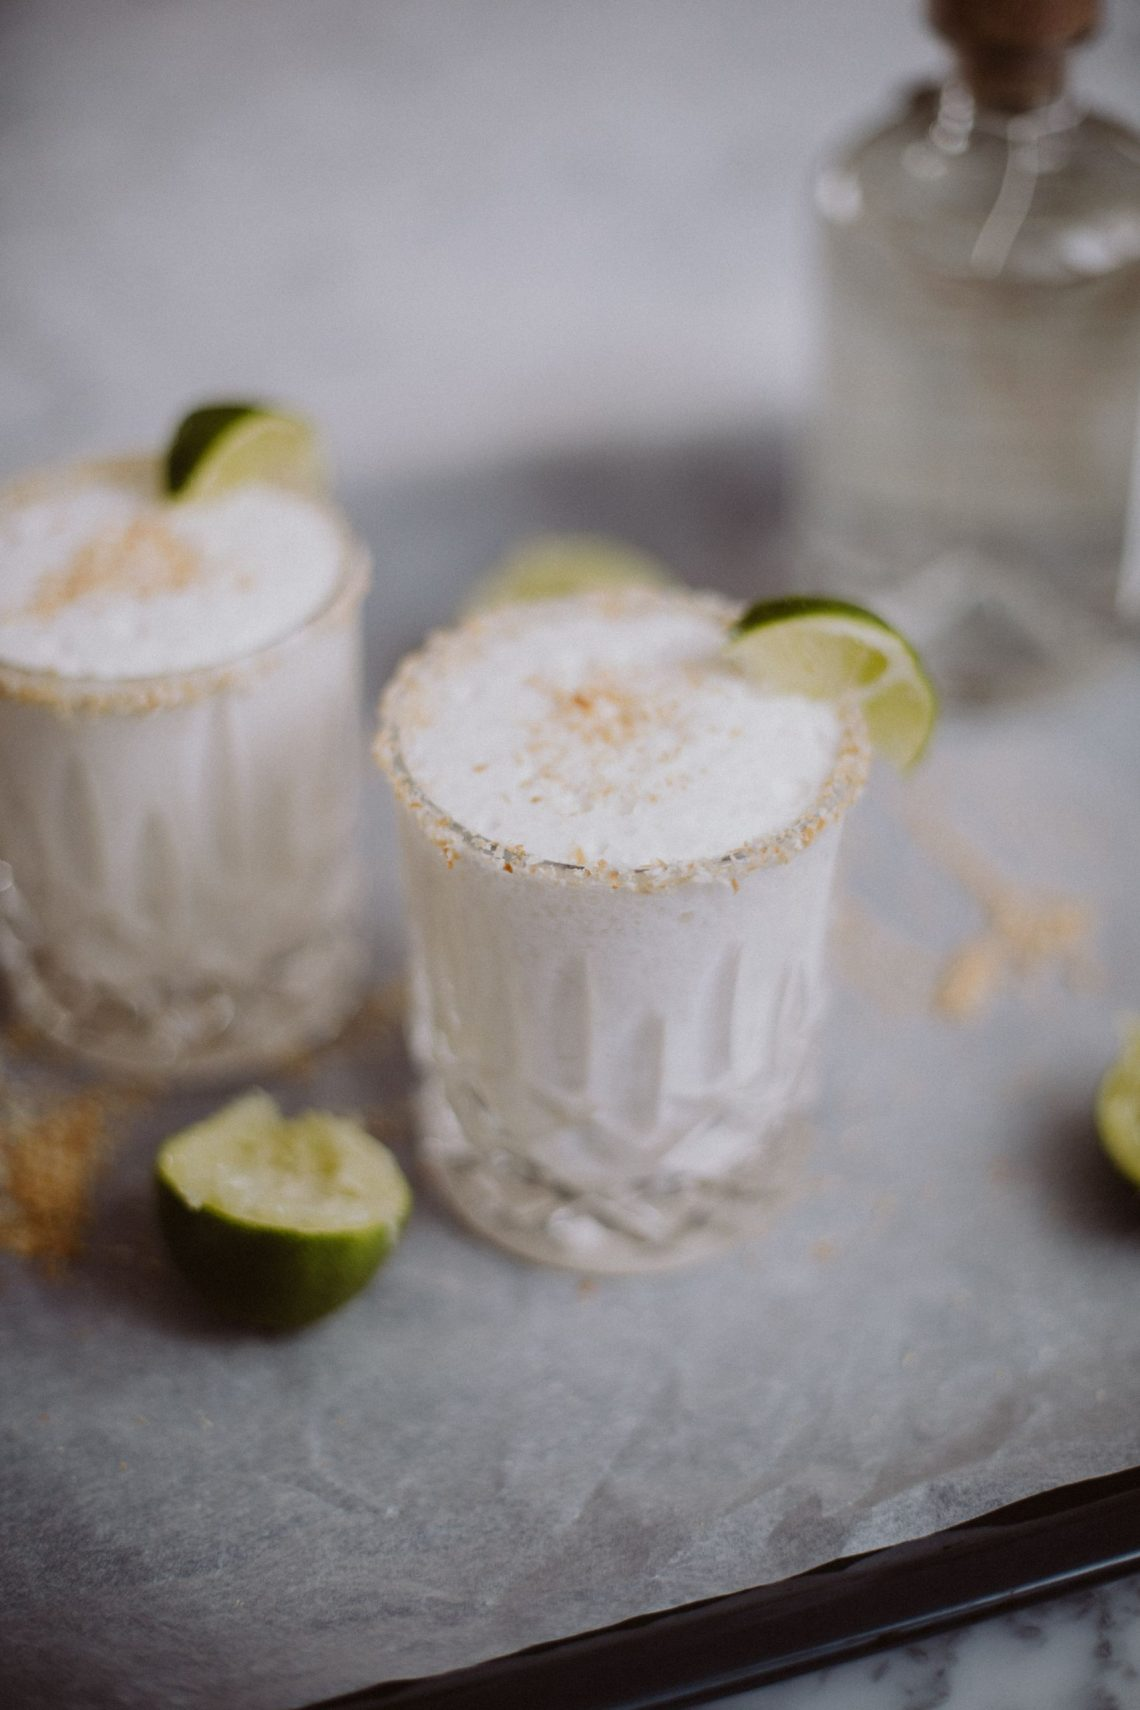 Bubbly Friday: Toasted Coconut Margarita